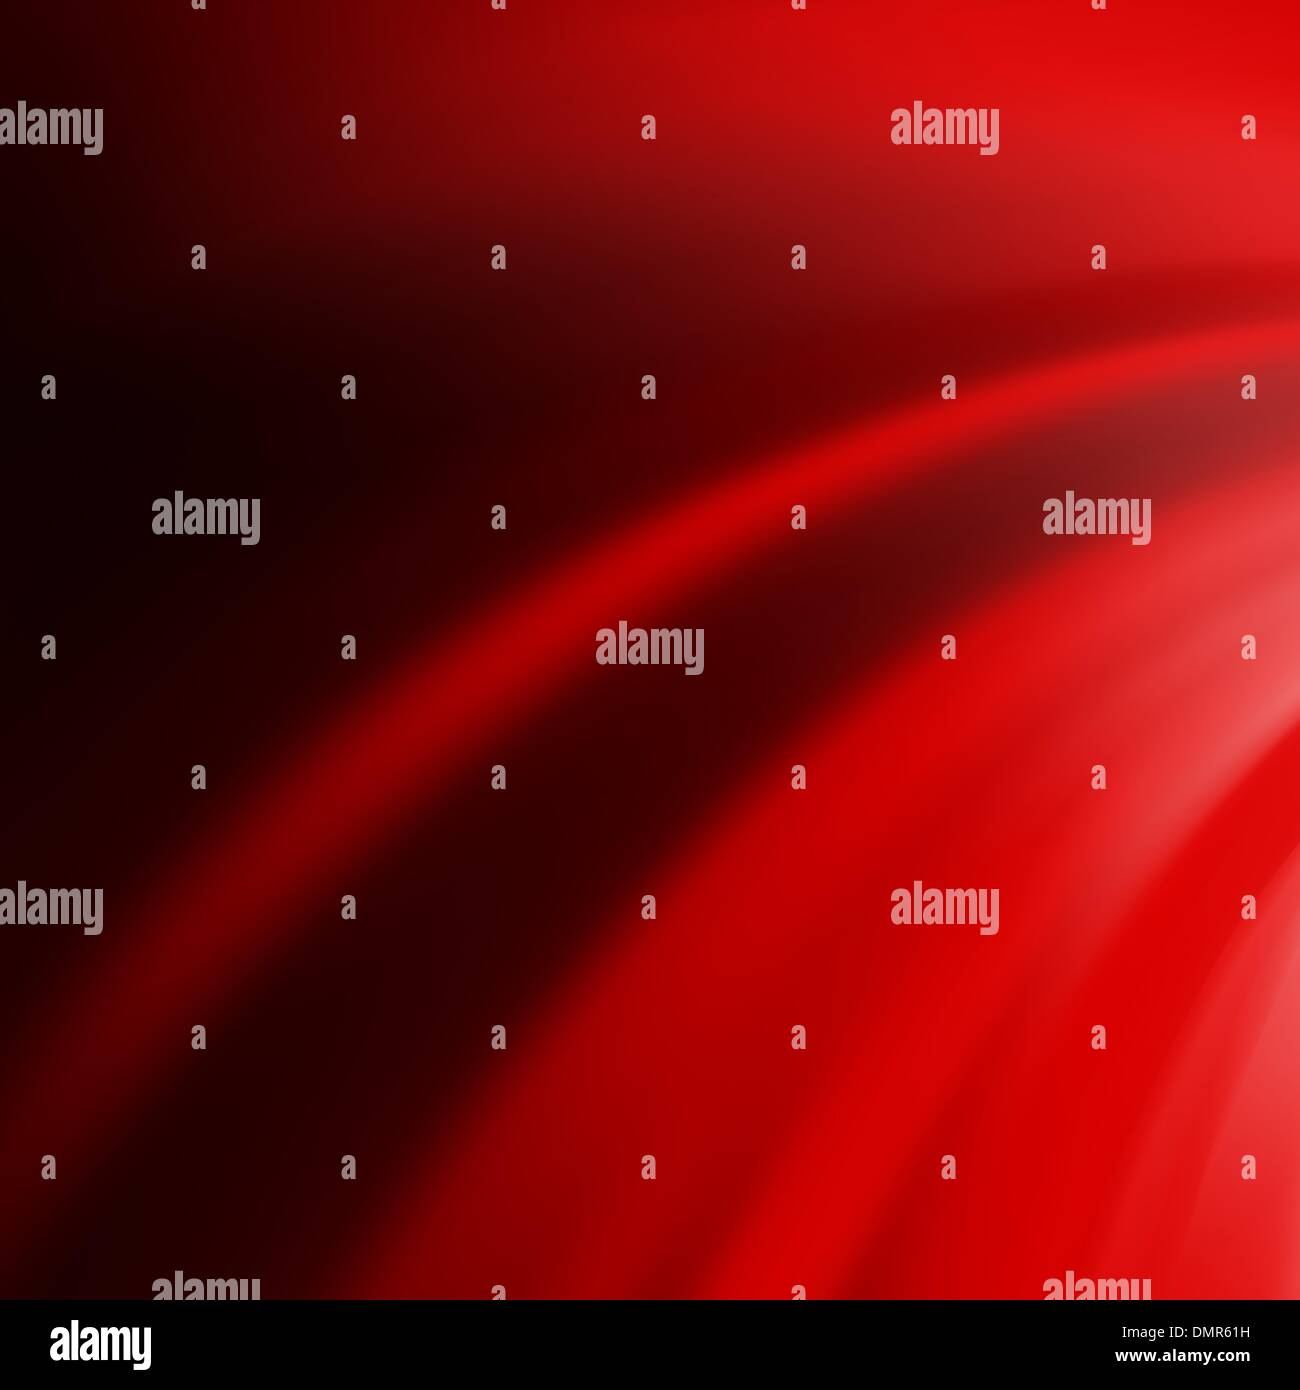 Abstract ardent background. EPS 8 - Stock Image